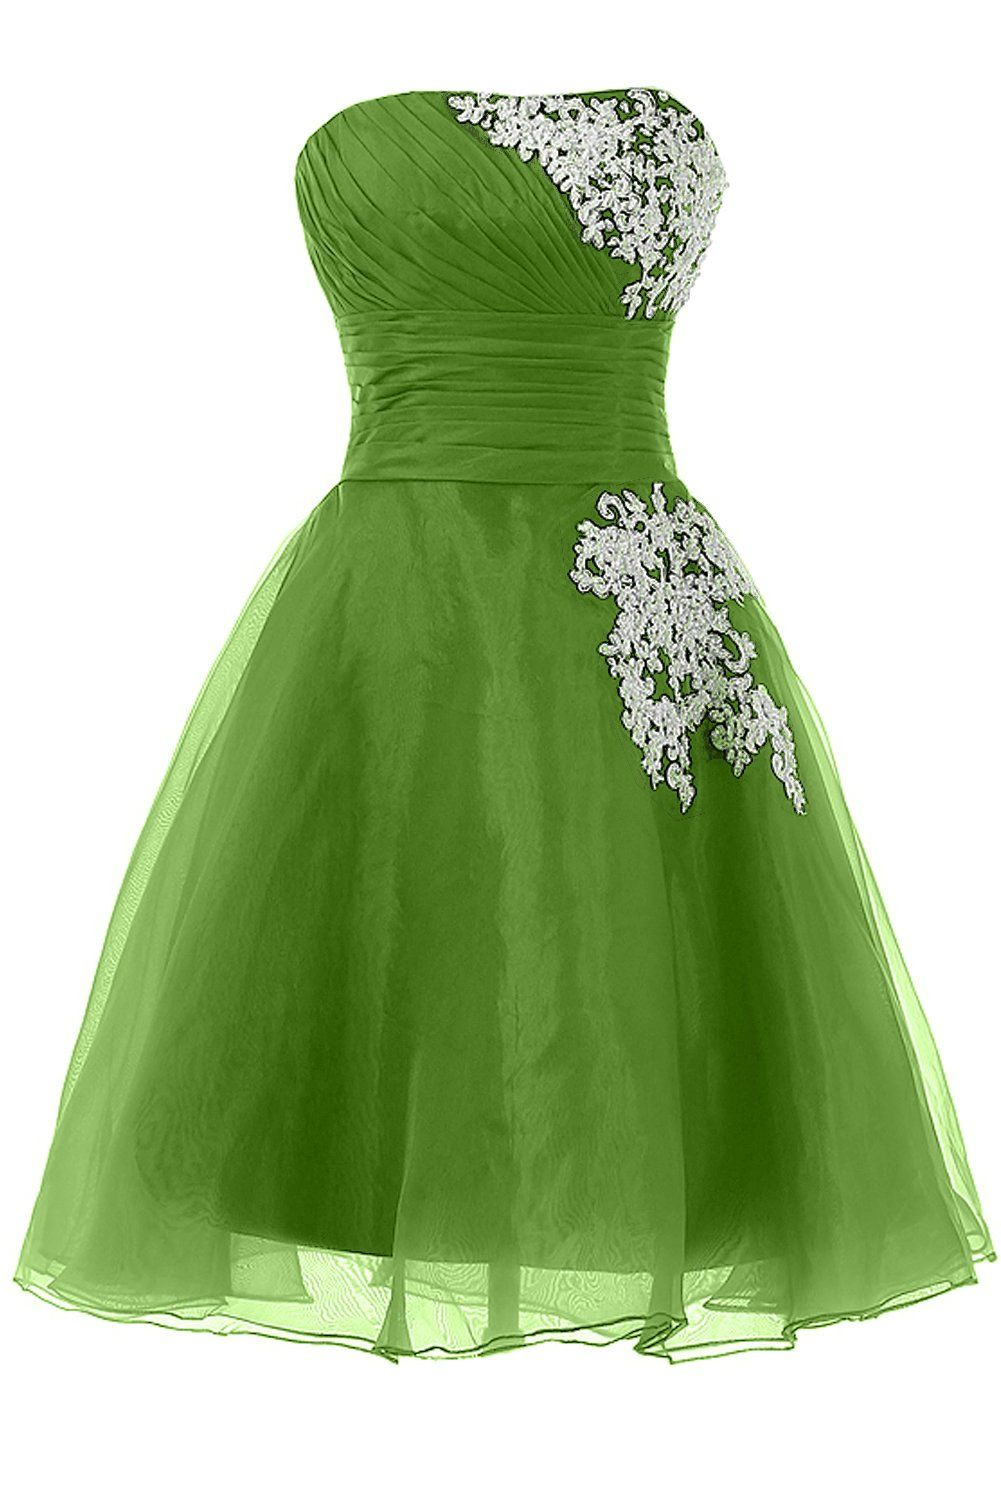 Dingzan organza and lace mini sweet party dance prom homecoming